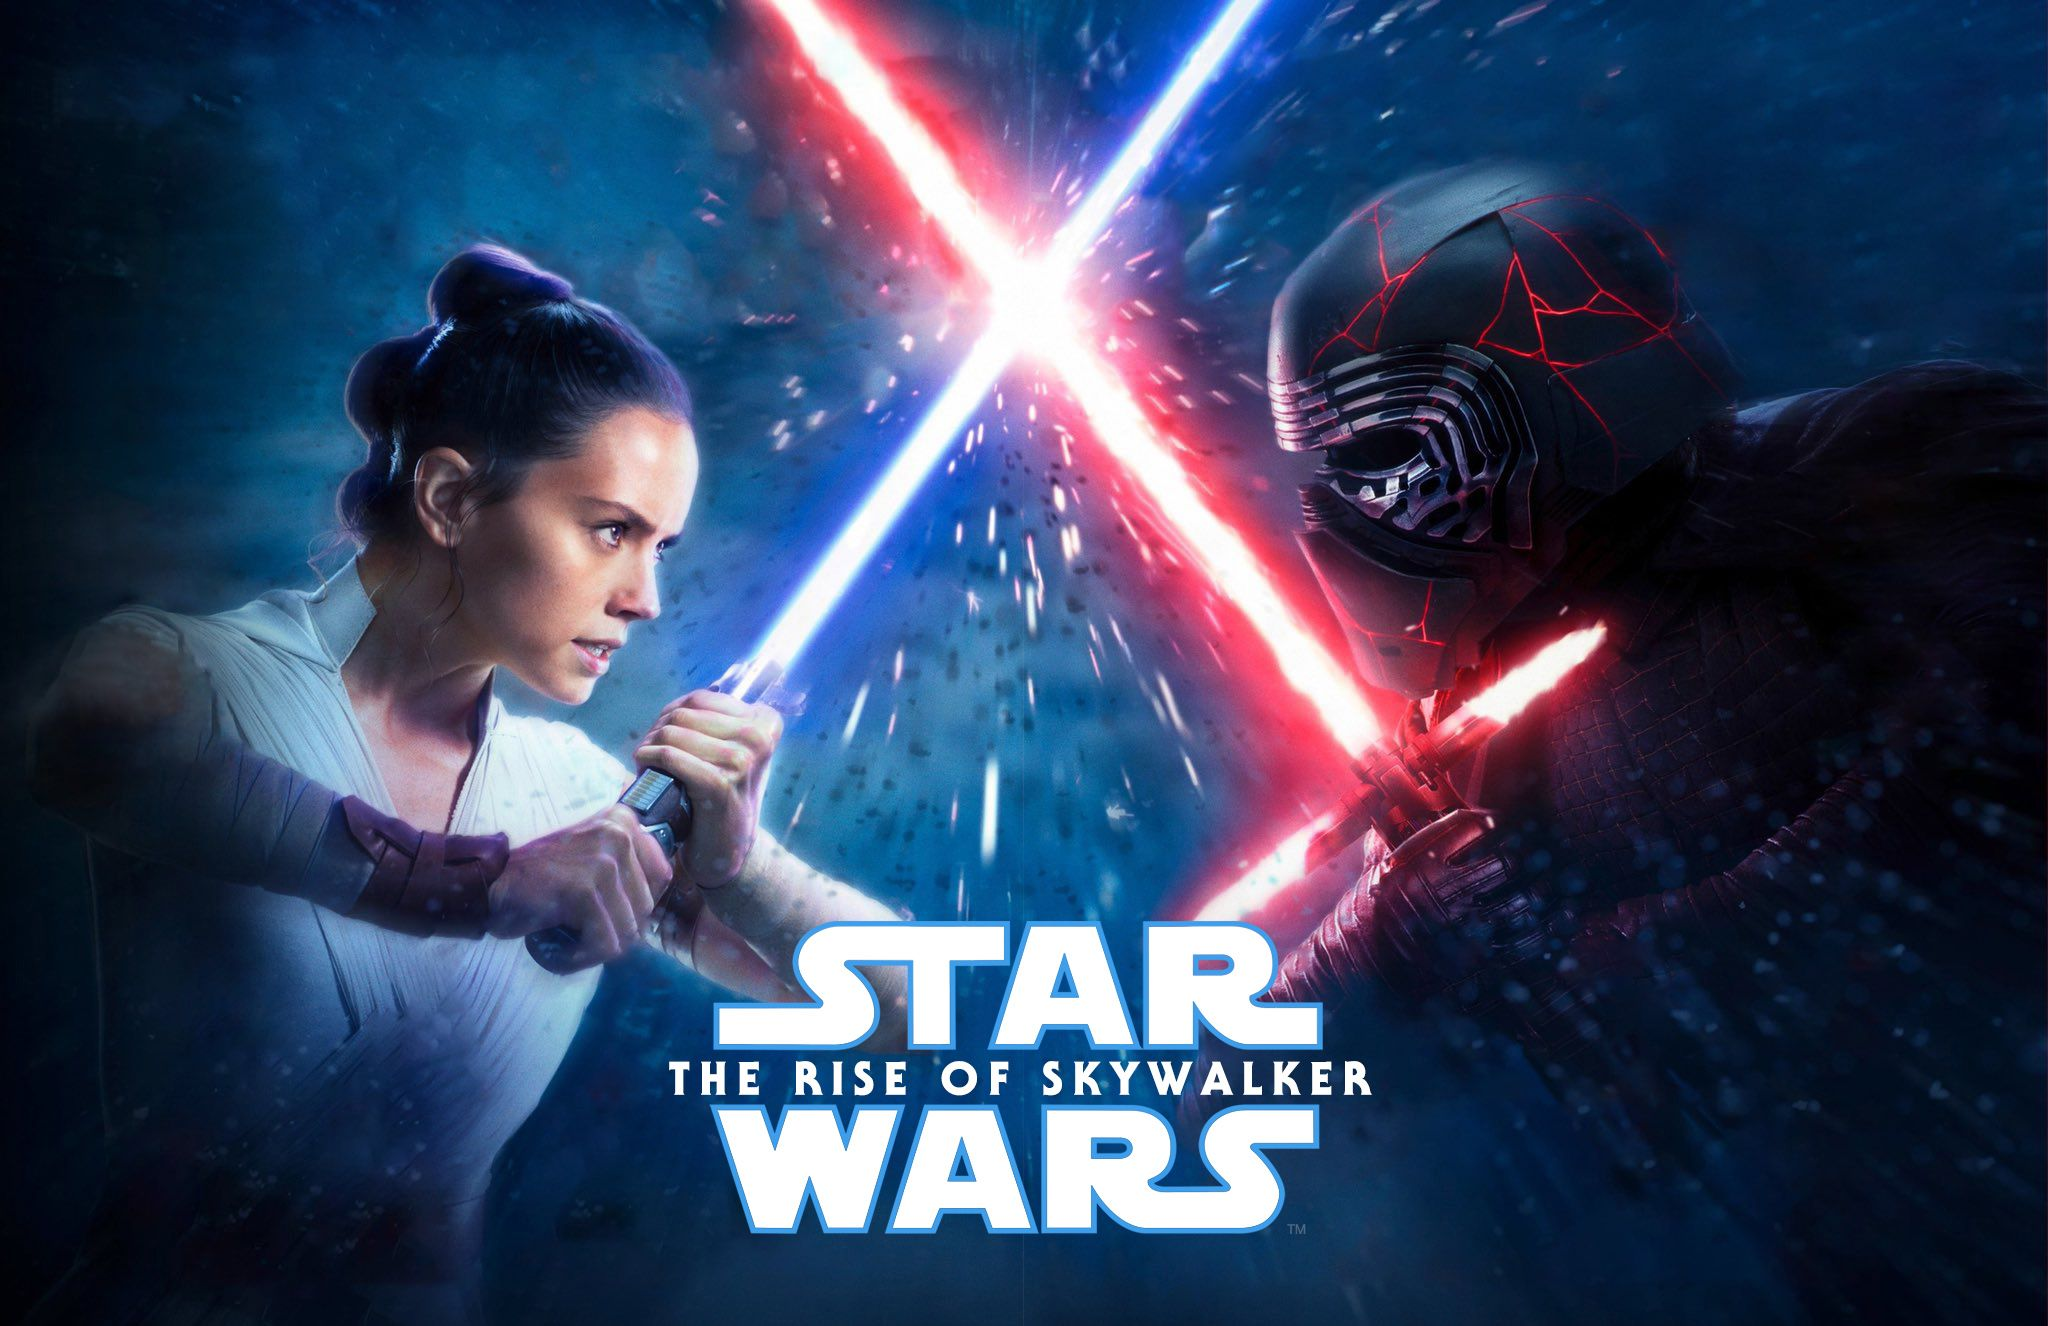 123movies4u Watch Star Wars The Rise Of Skywalker Online For Free 2019 No Sign Up Star Wars Watch Star Wars Episodes New Hollywood Movies